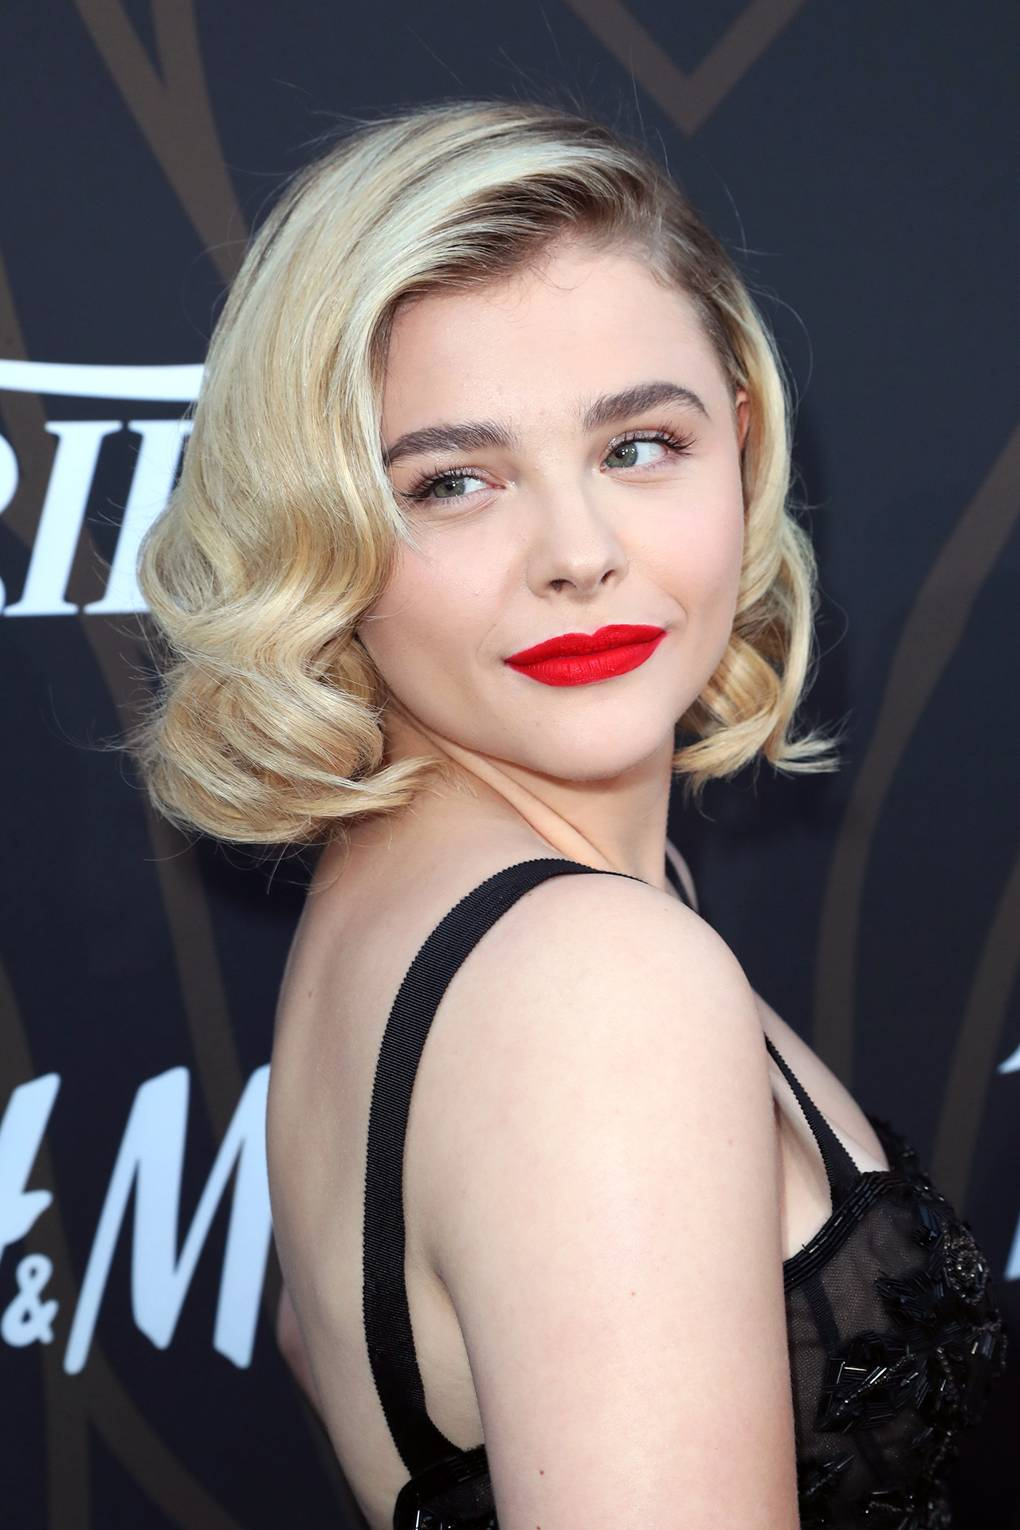 chloe moretz hair & makeup - best beauty looks | glamour uk